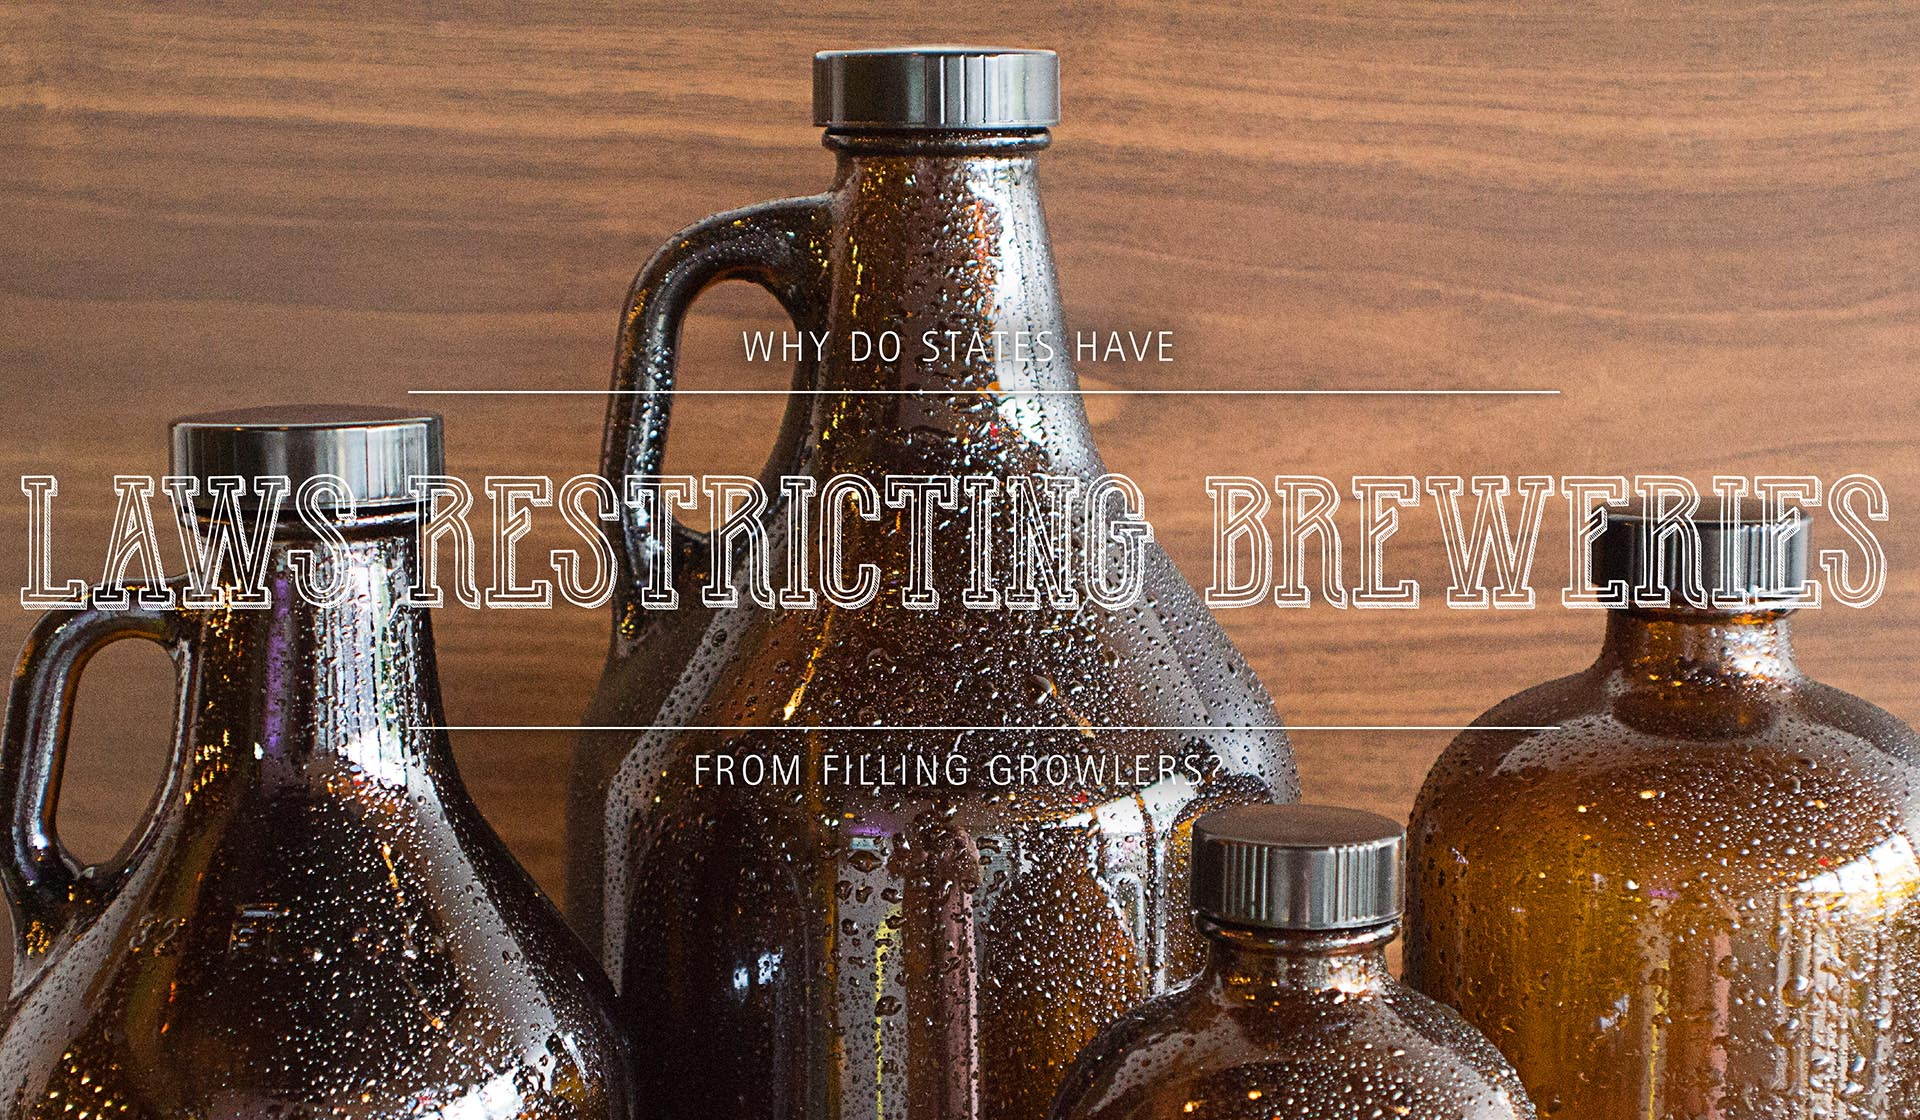 Why Do States Have Laws Restricting Breweries From Filling Growlers?